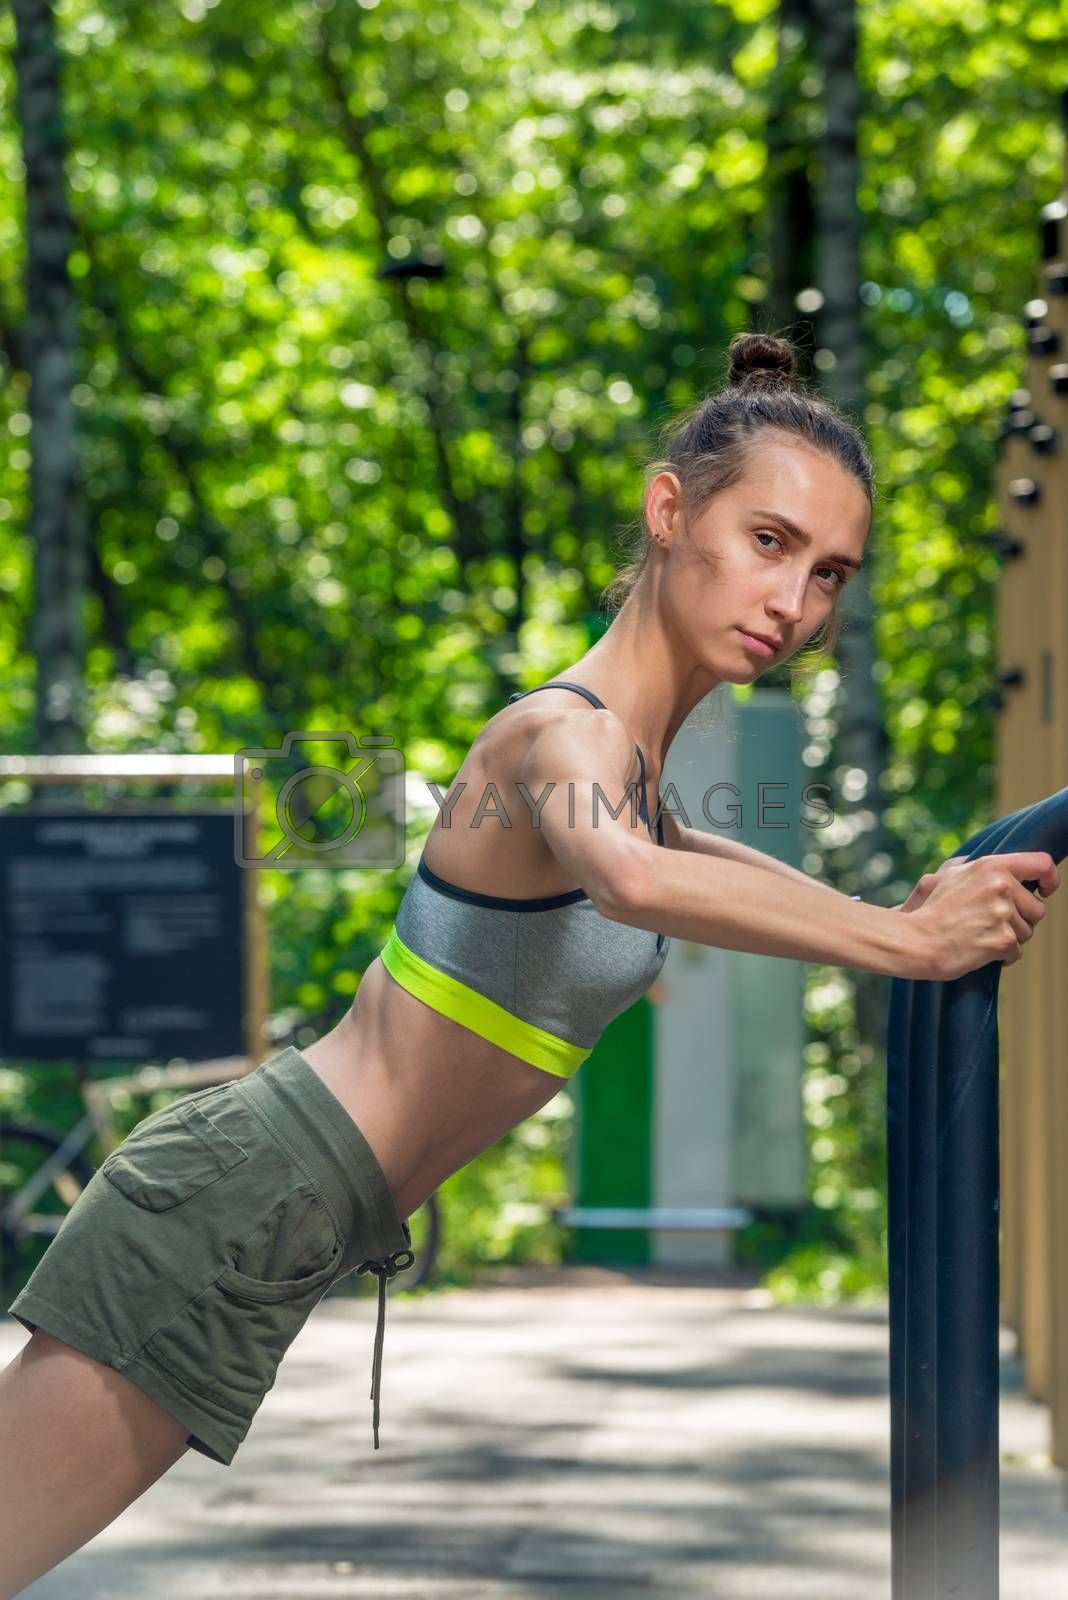 in the summer park training on simulators, portrait of a strong  by Labunskiy K.